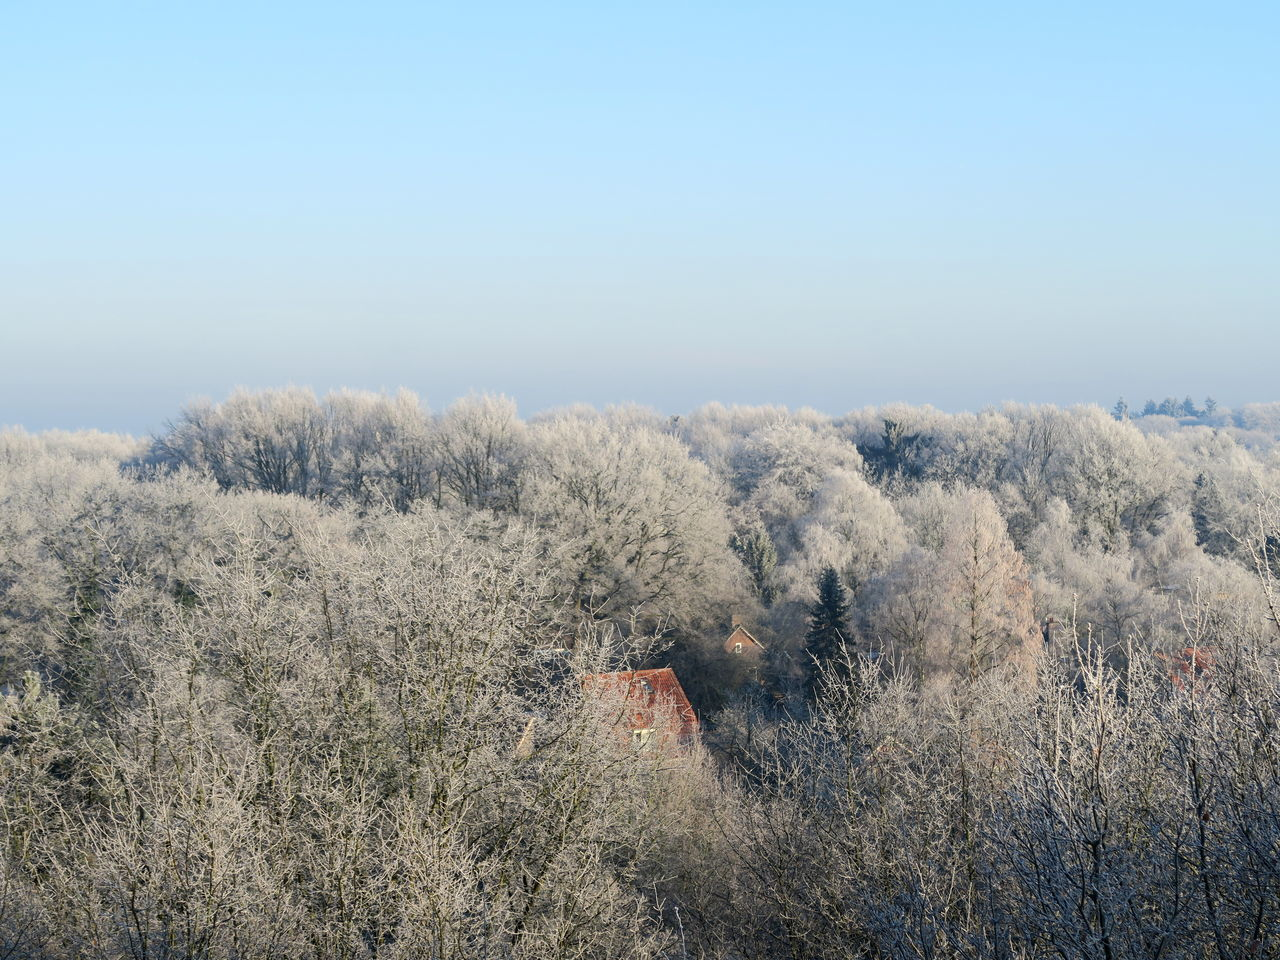 Room with a View: Frosted Trees till the Horizon Beauty In Nature Clear Sky Colors Of Nature Colours Of Nature Day EyeEm Best Shots Frost Frosted Nature Frosted Trees Glazed Frost Growth Horizon Over Land Ice Tree Nature Nature On Your Doorstep Nature_collection No People Outdoors Sky Tree Trees And Sky Winterland Winterlandscape Winterwonderland WinterWonderland❄️